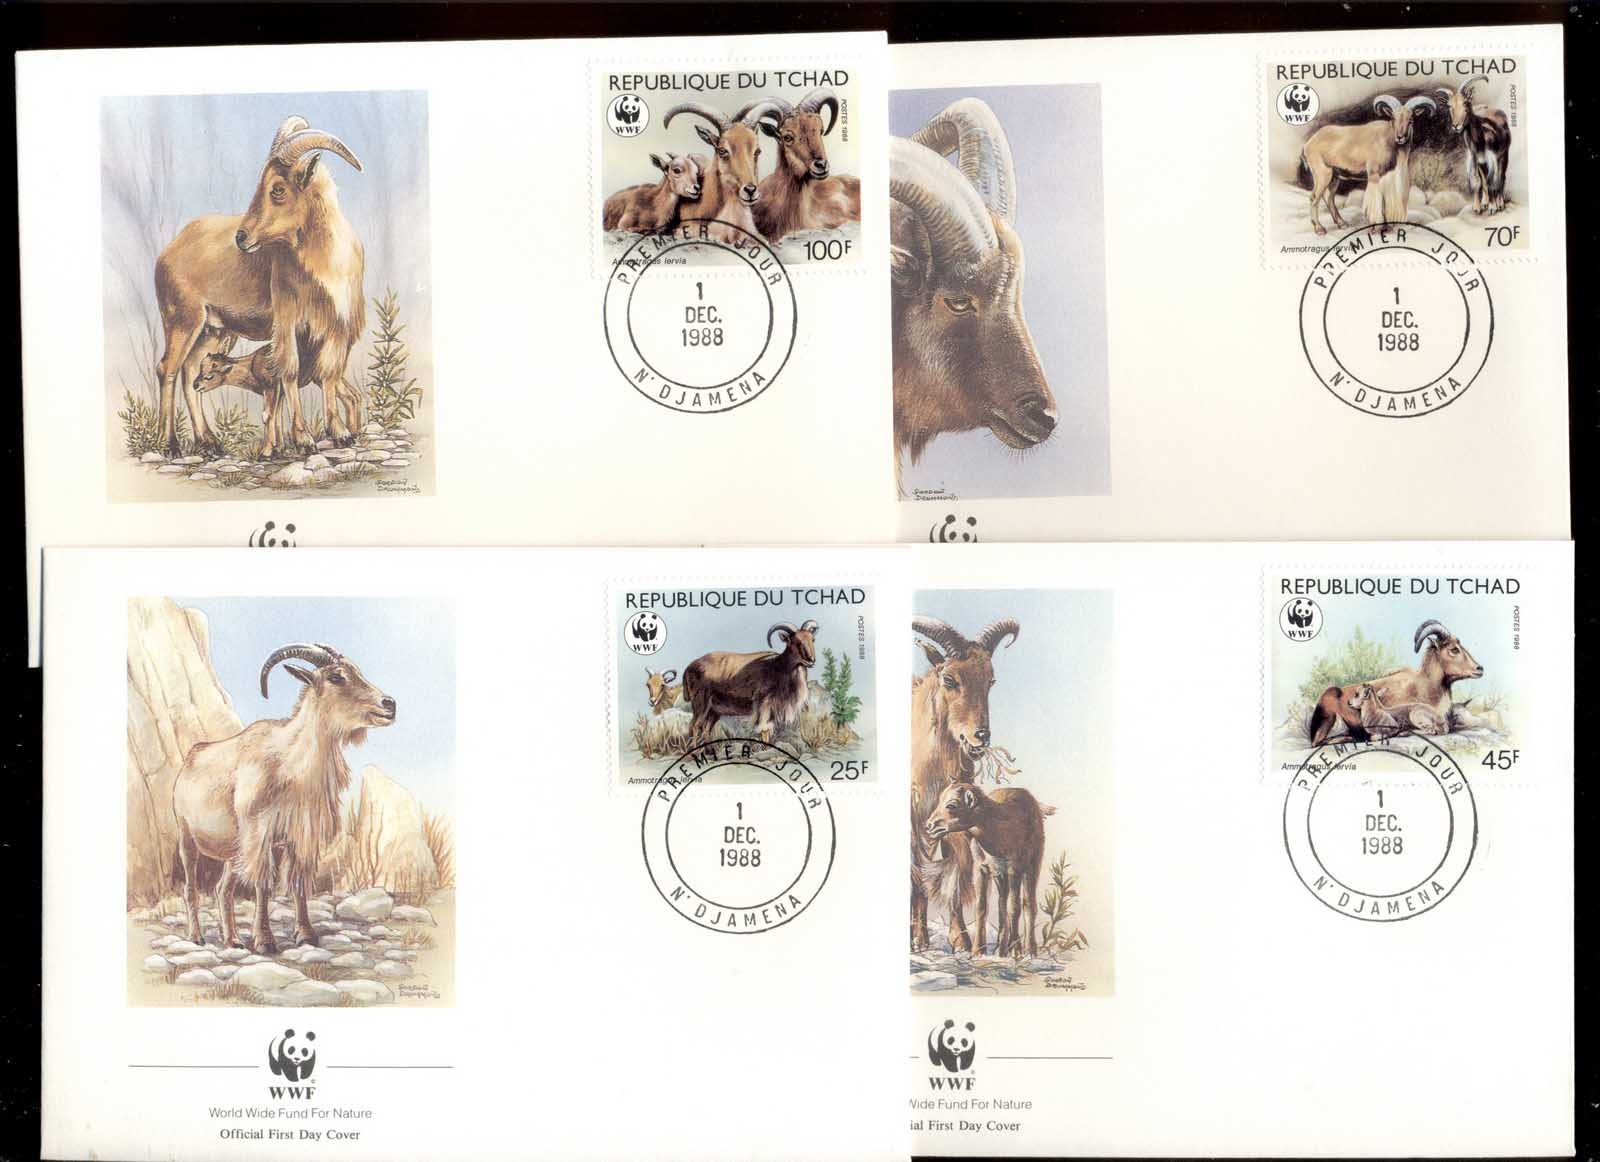 Chad 1988 WWF Barbary Sheep 4xFDC